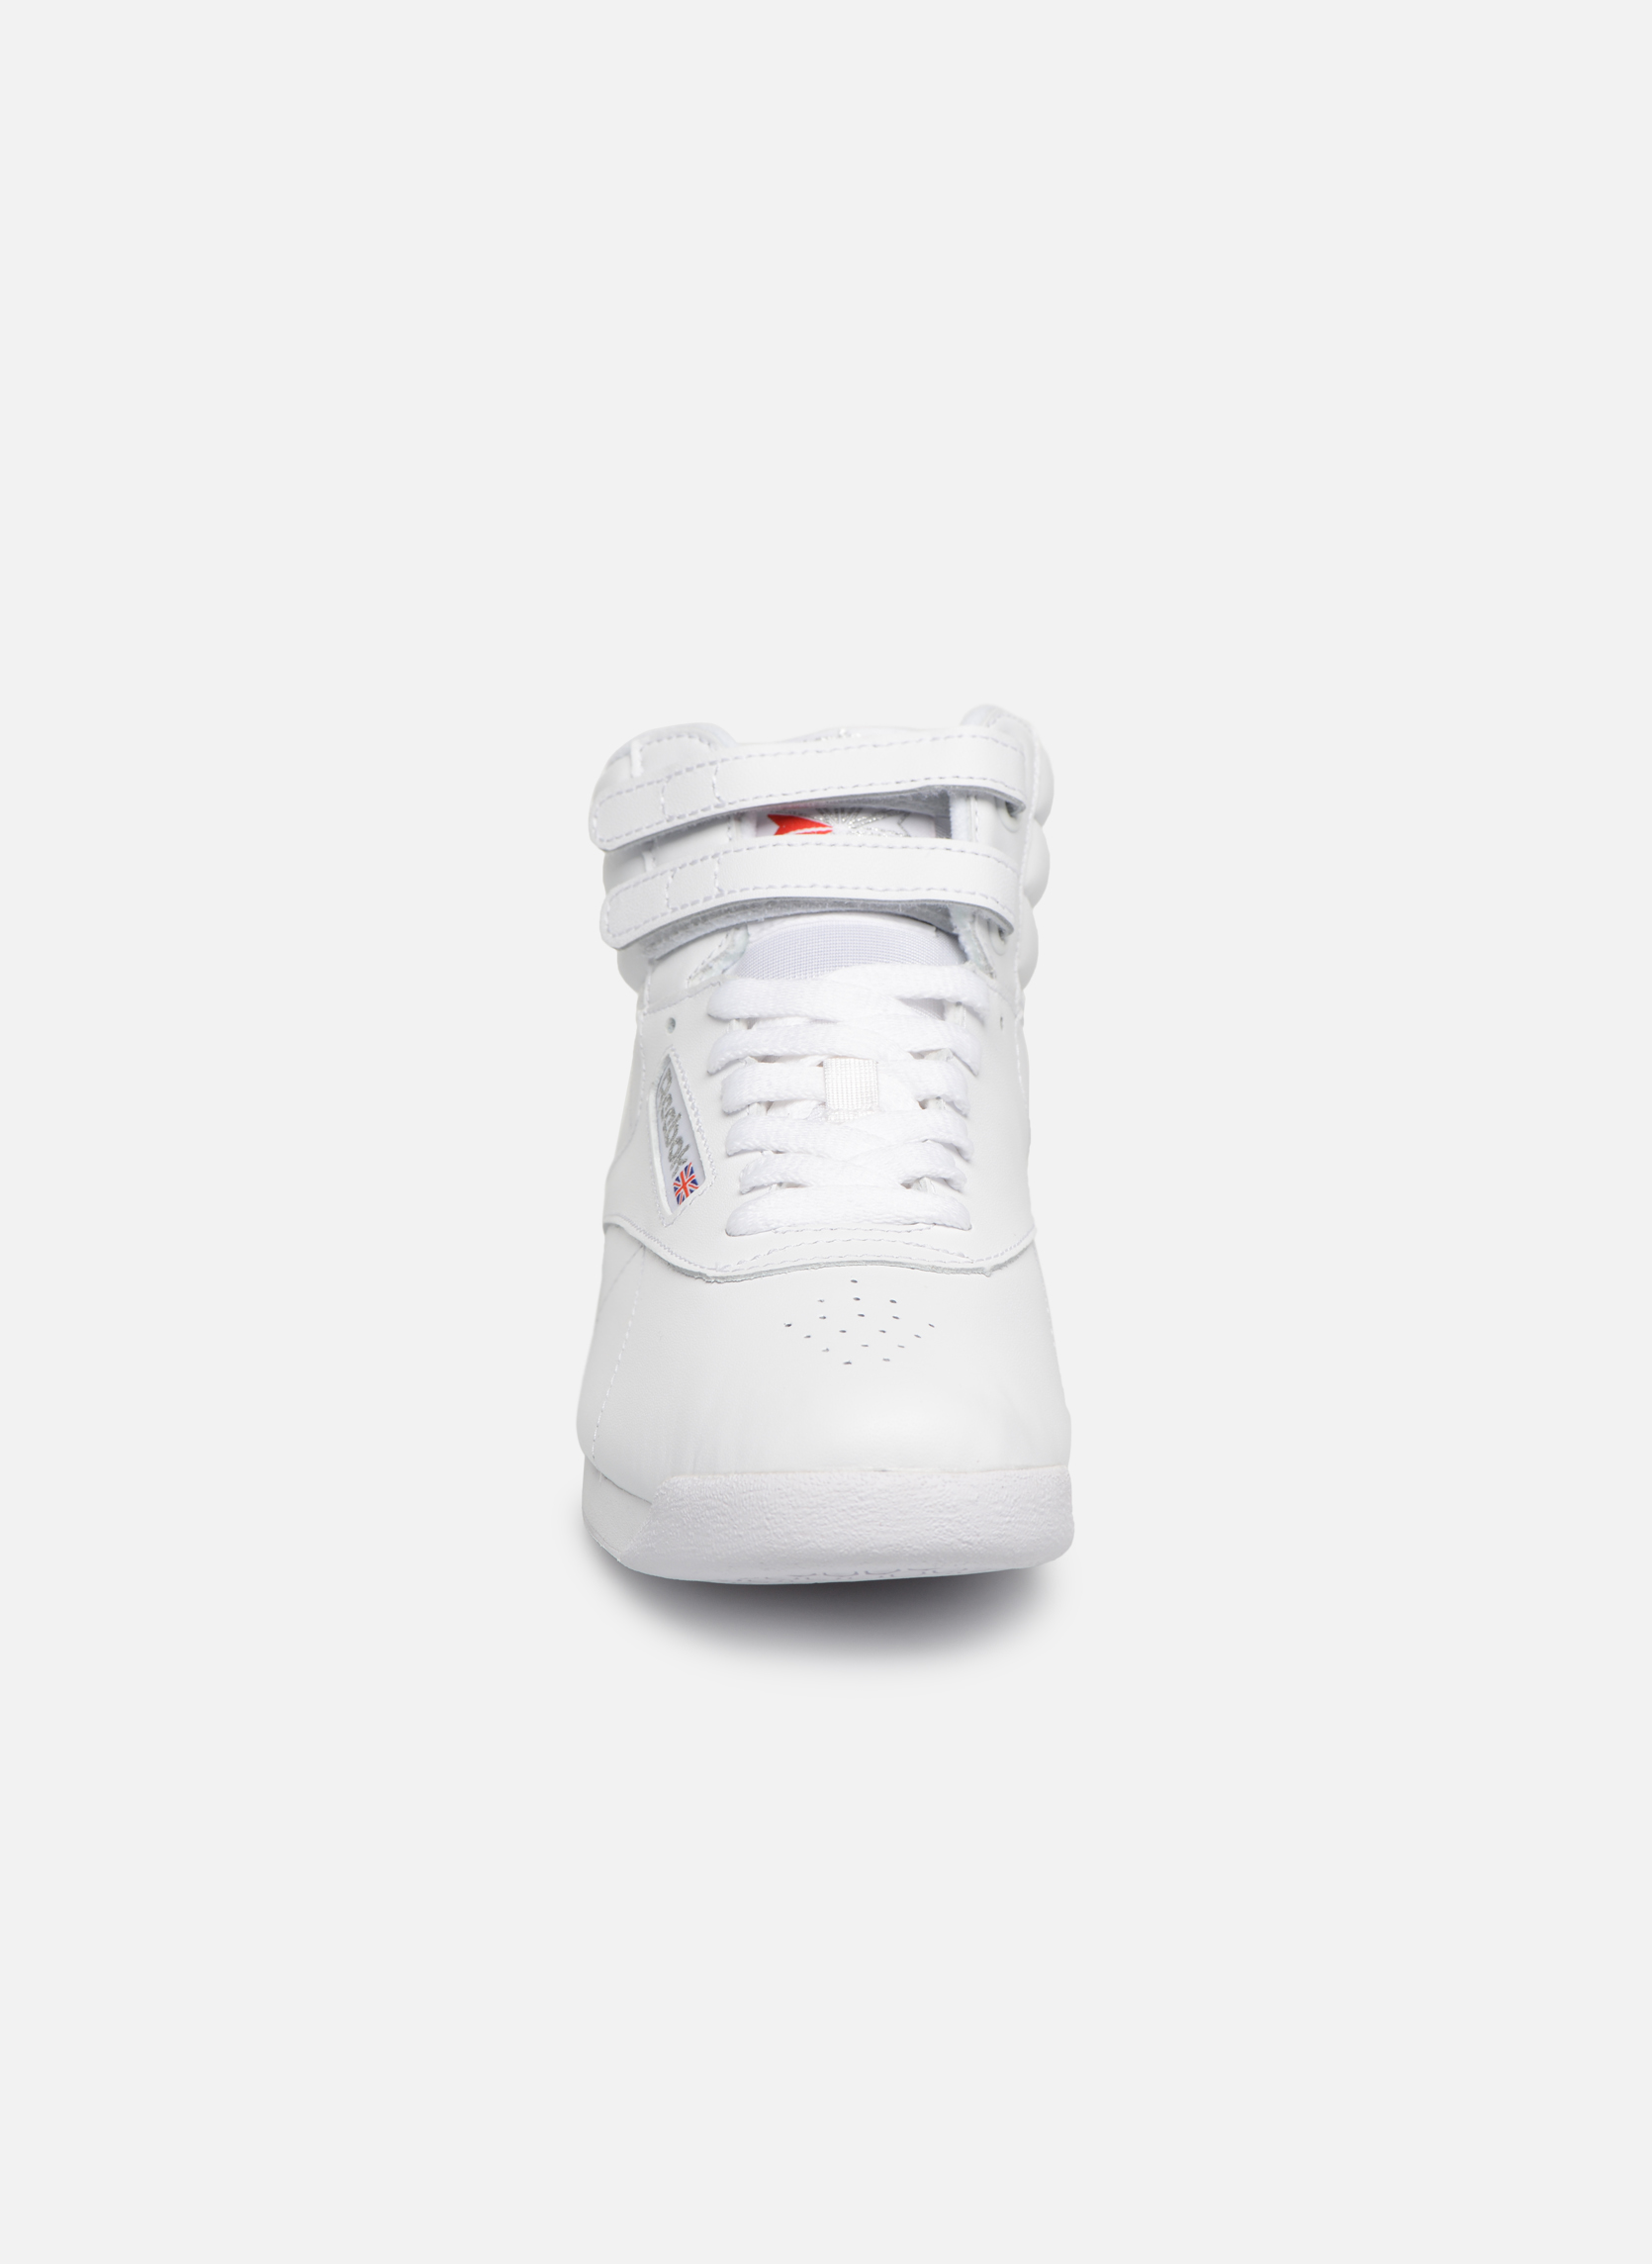 Freestyle Hi White